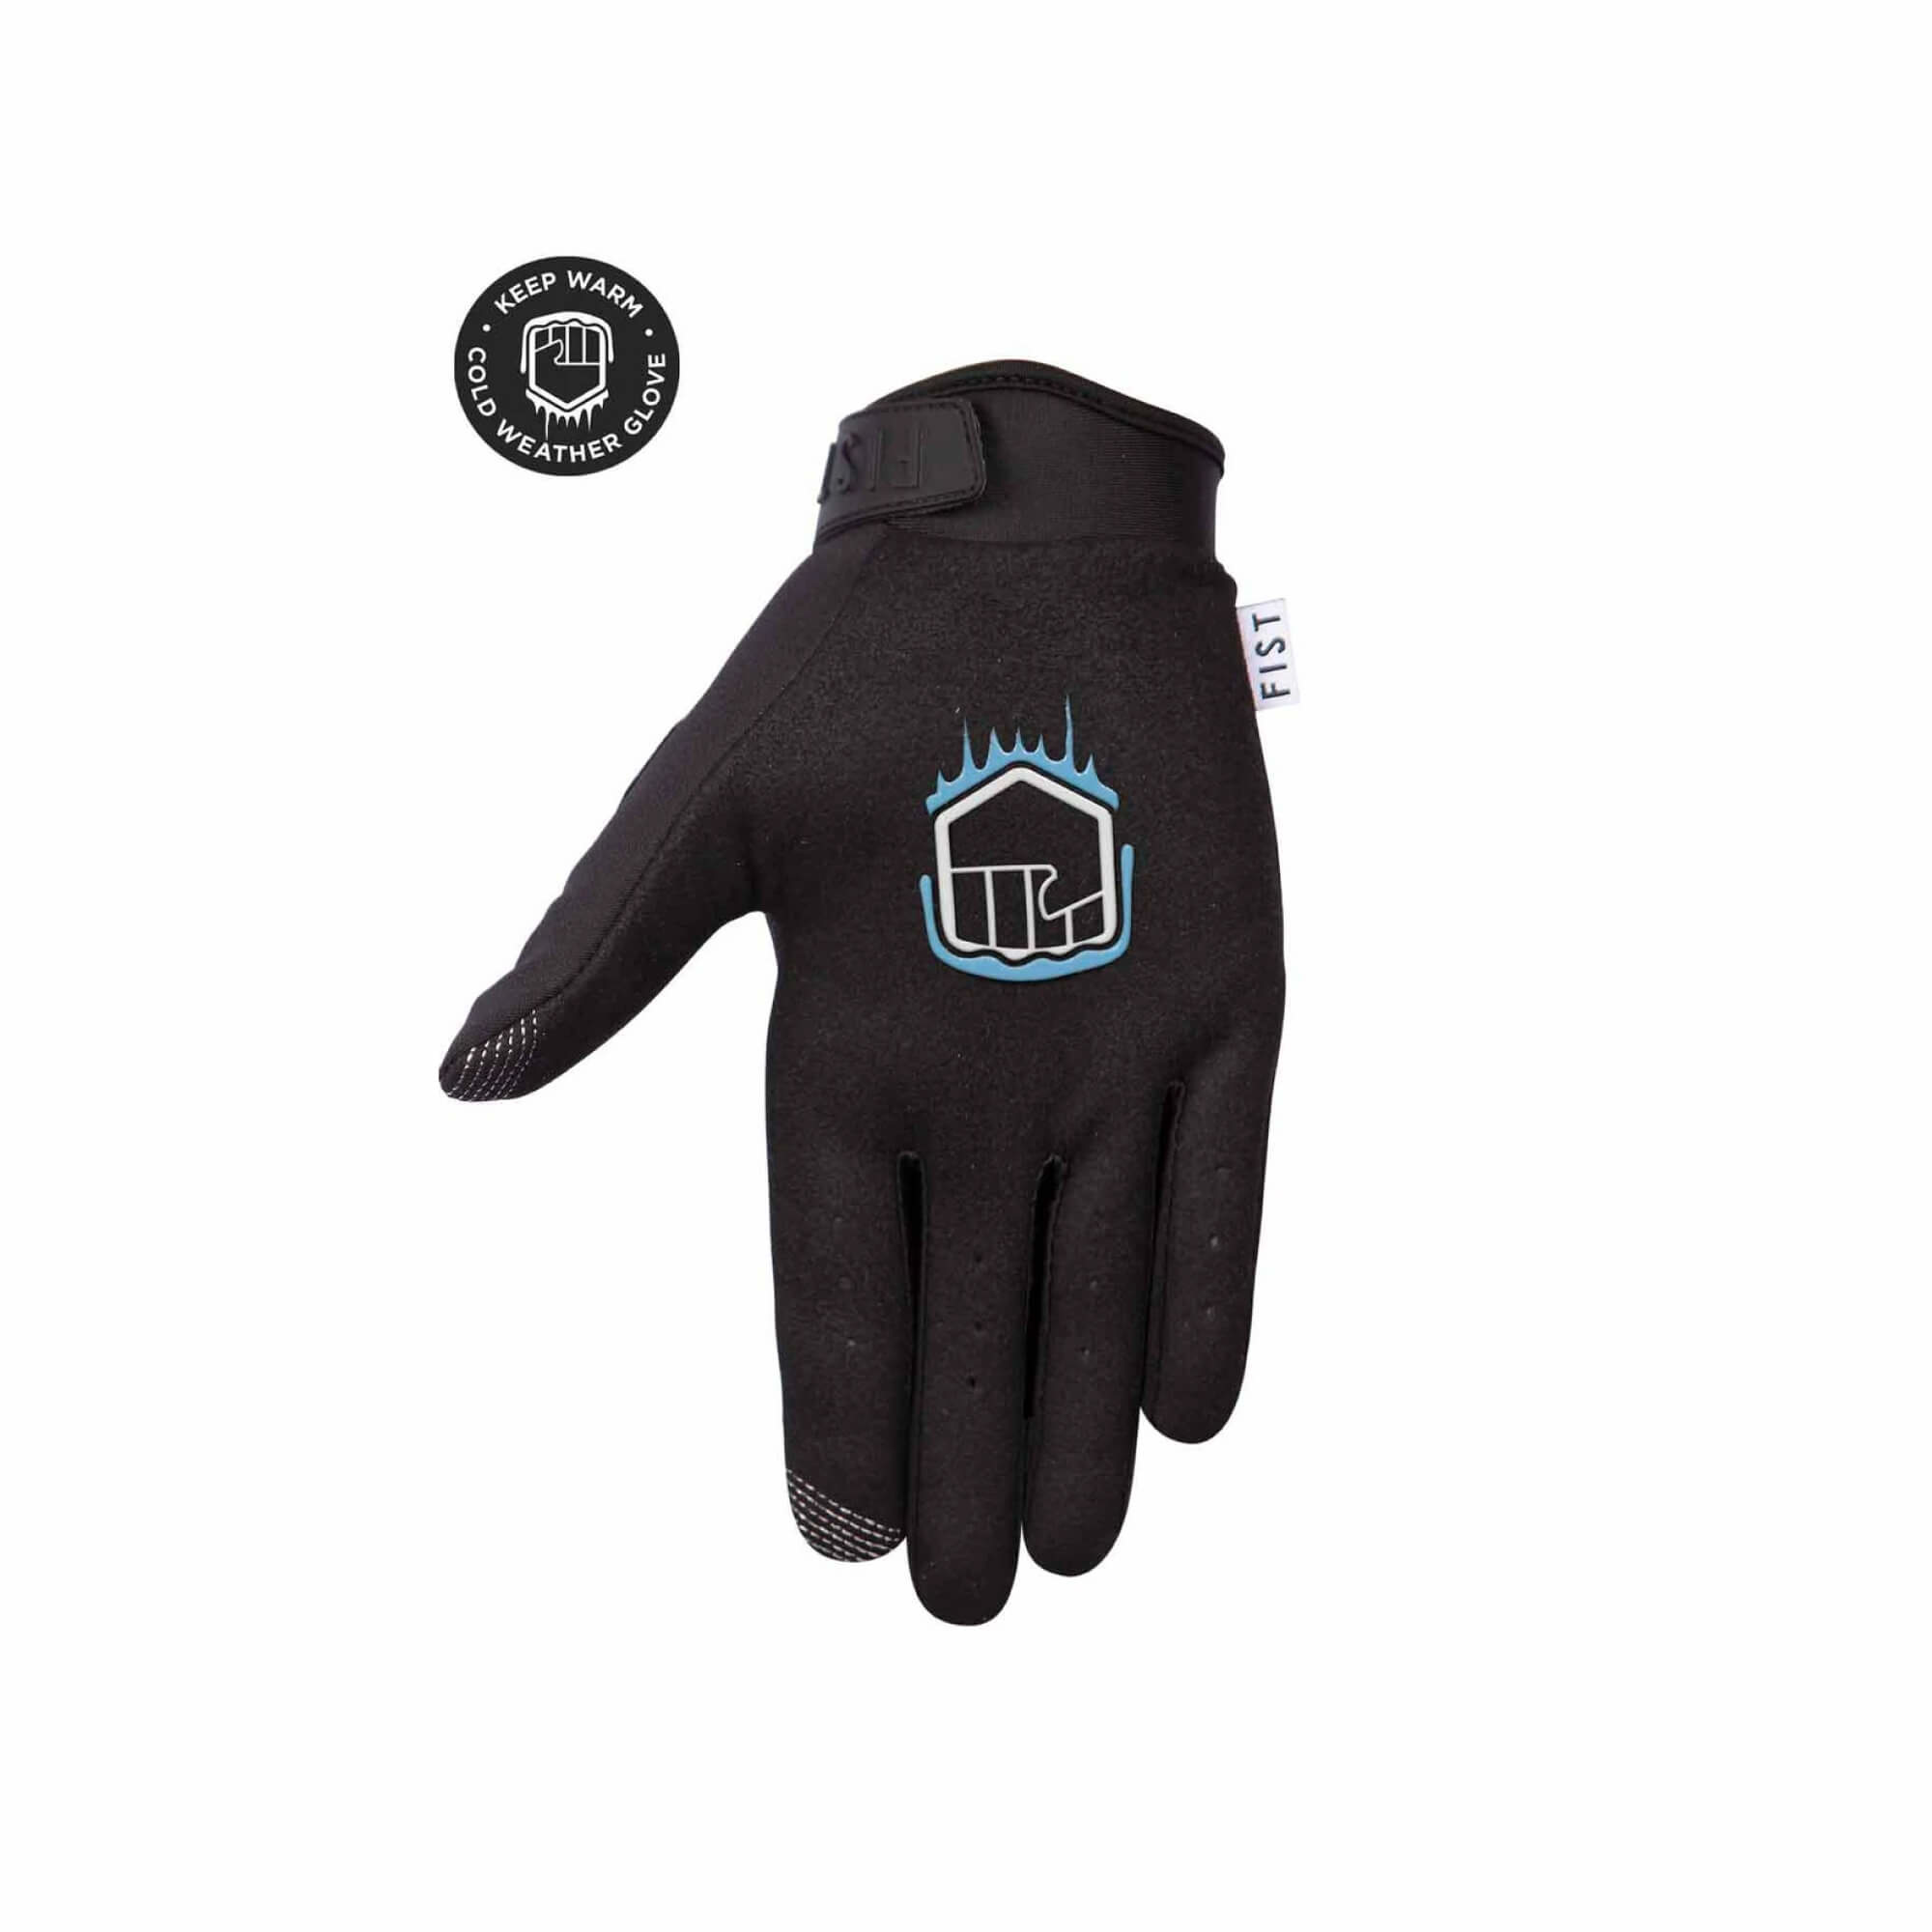 Frosty Fingers Gloves - Polar Bear Cold Weather-2